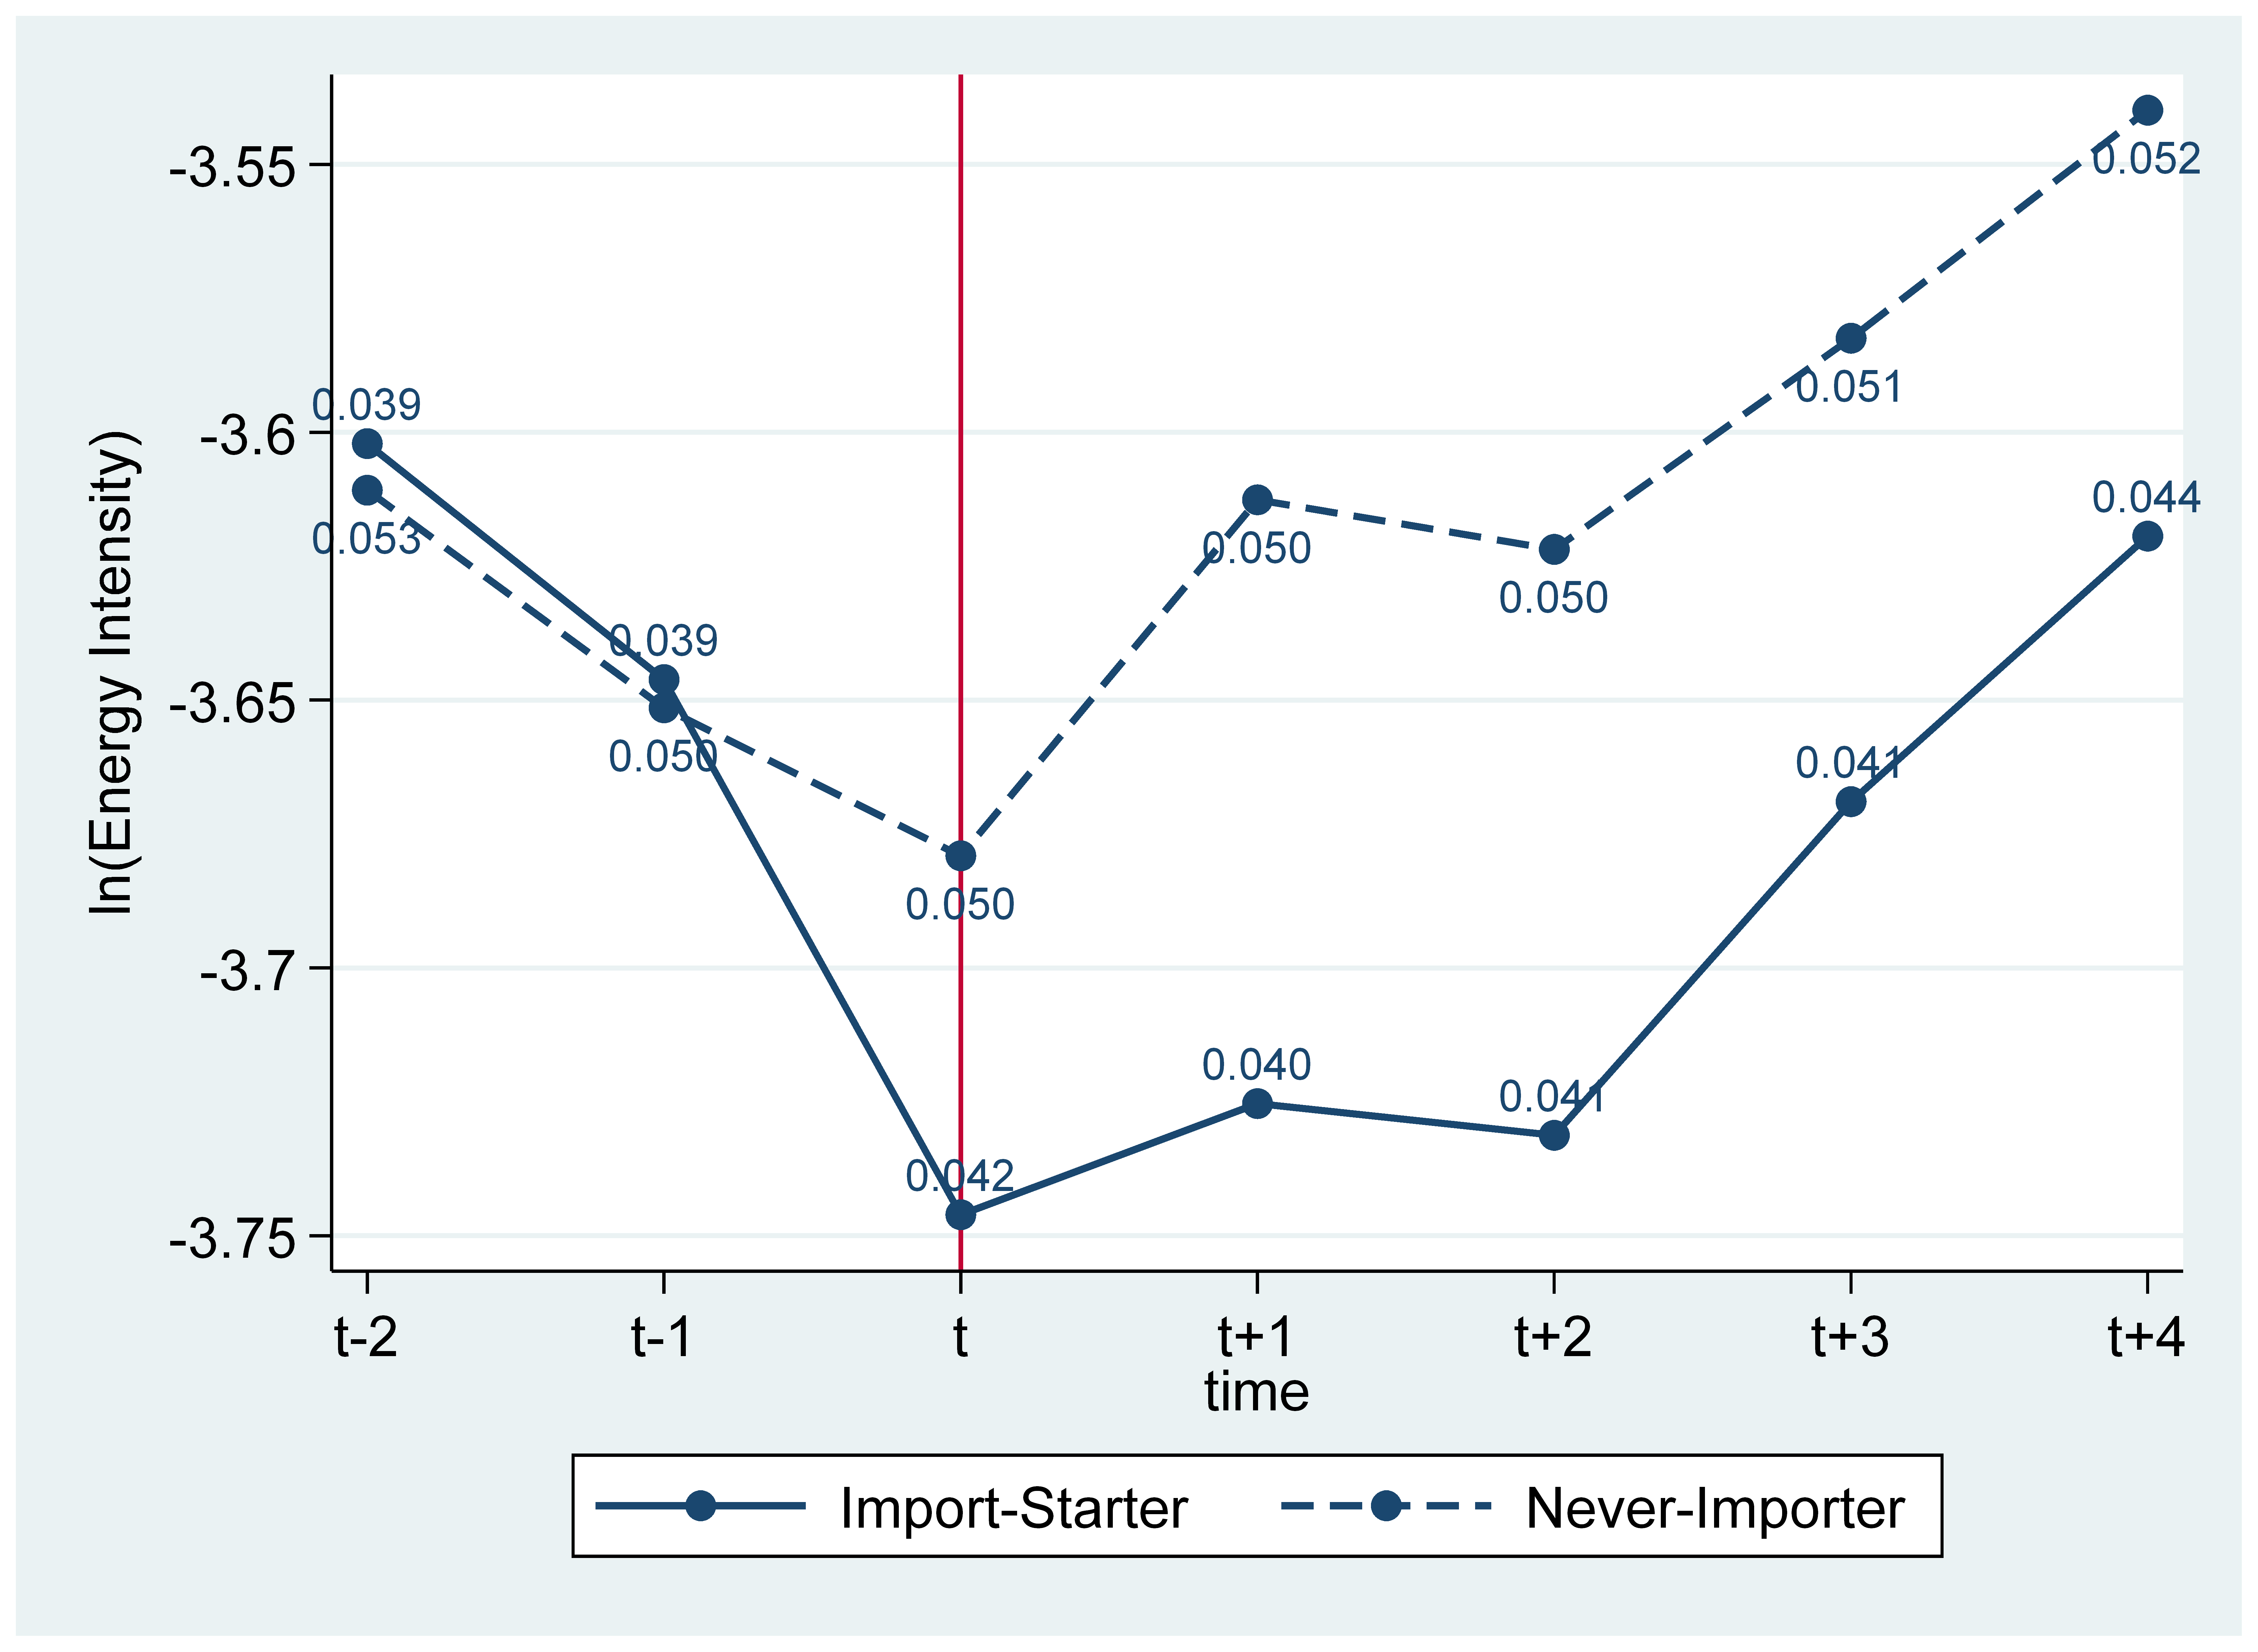 Figure 1: Energy efficiency by matched import-starters and never-importers